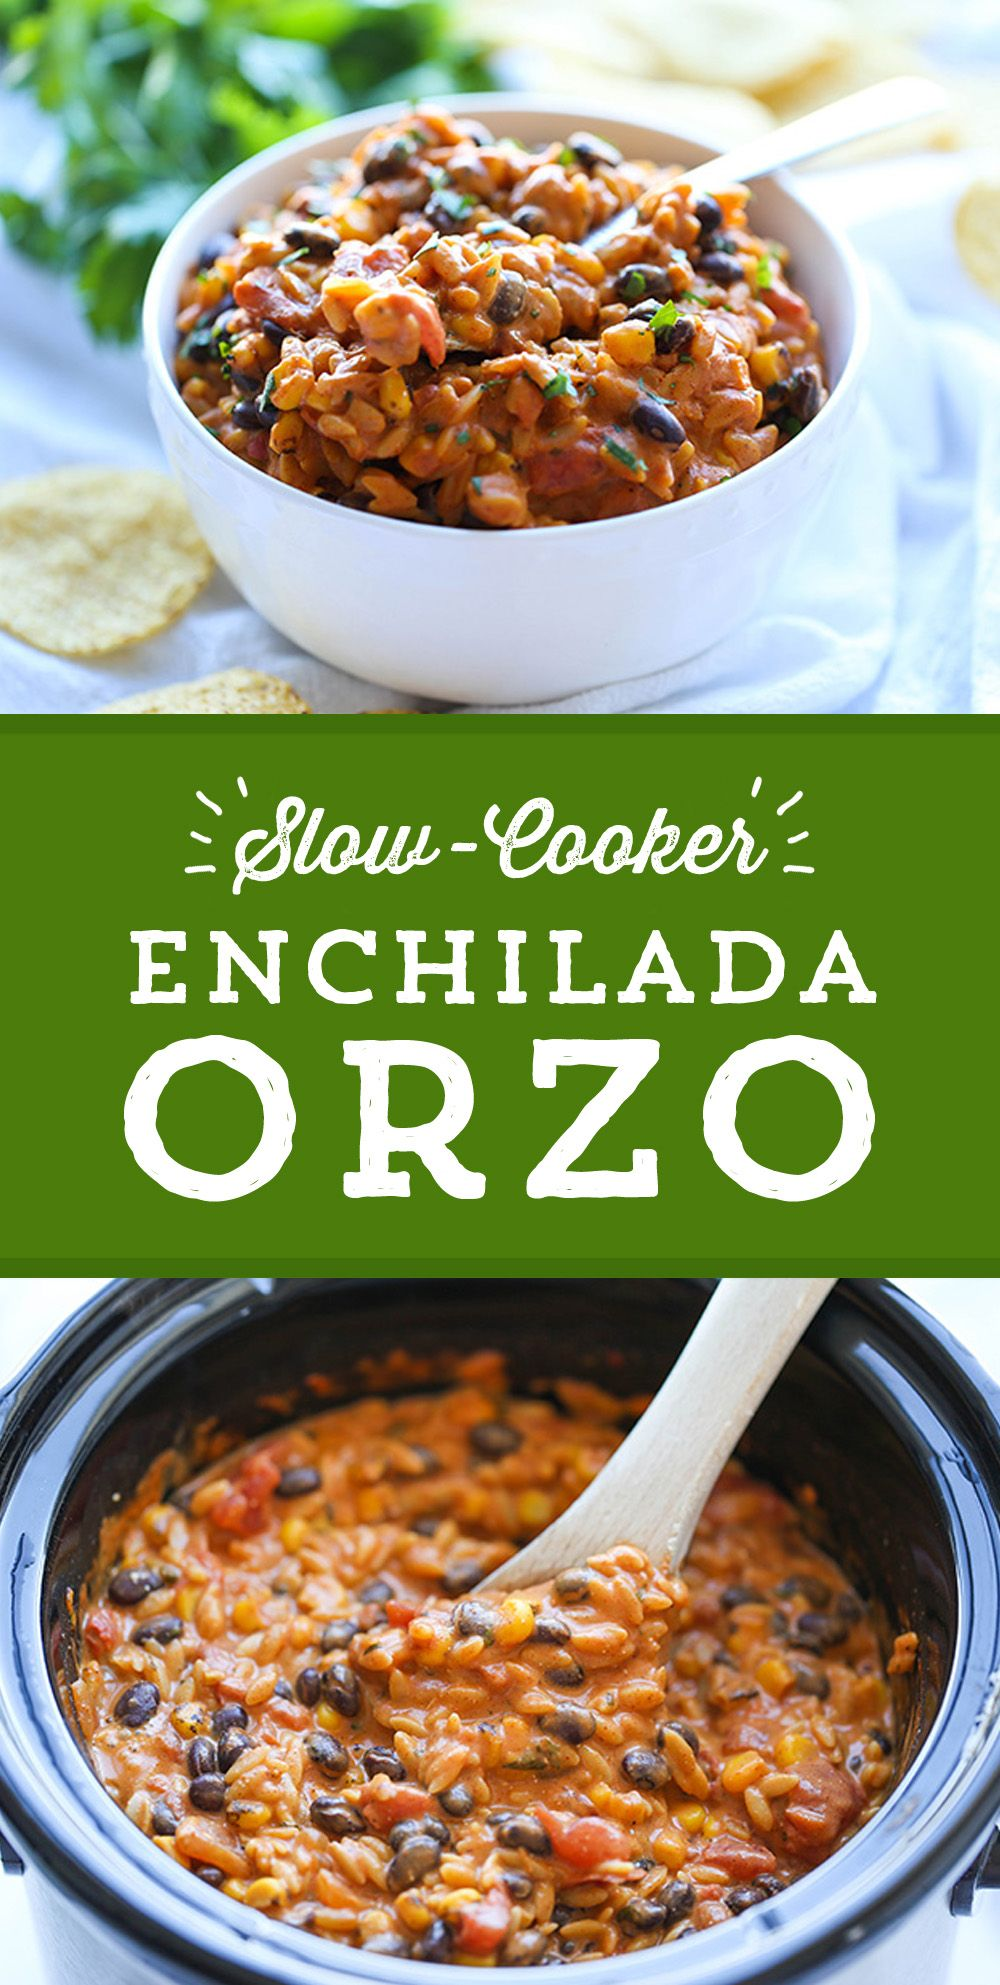 Easy weeknight meal idea! This delicious Slow Cooker Enchilada Orzo from @damndelicious couldn't be easier! Just 10 minutes prep, set it in the Slow Cooker in the morning, and forget it! The creamiest, cheesiest enchilada orzo will be ready just in time for dinner!